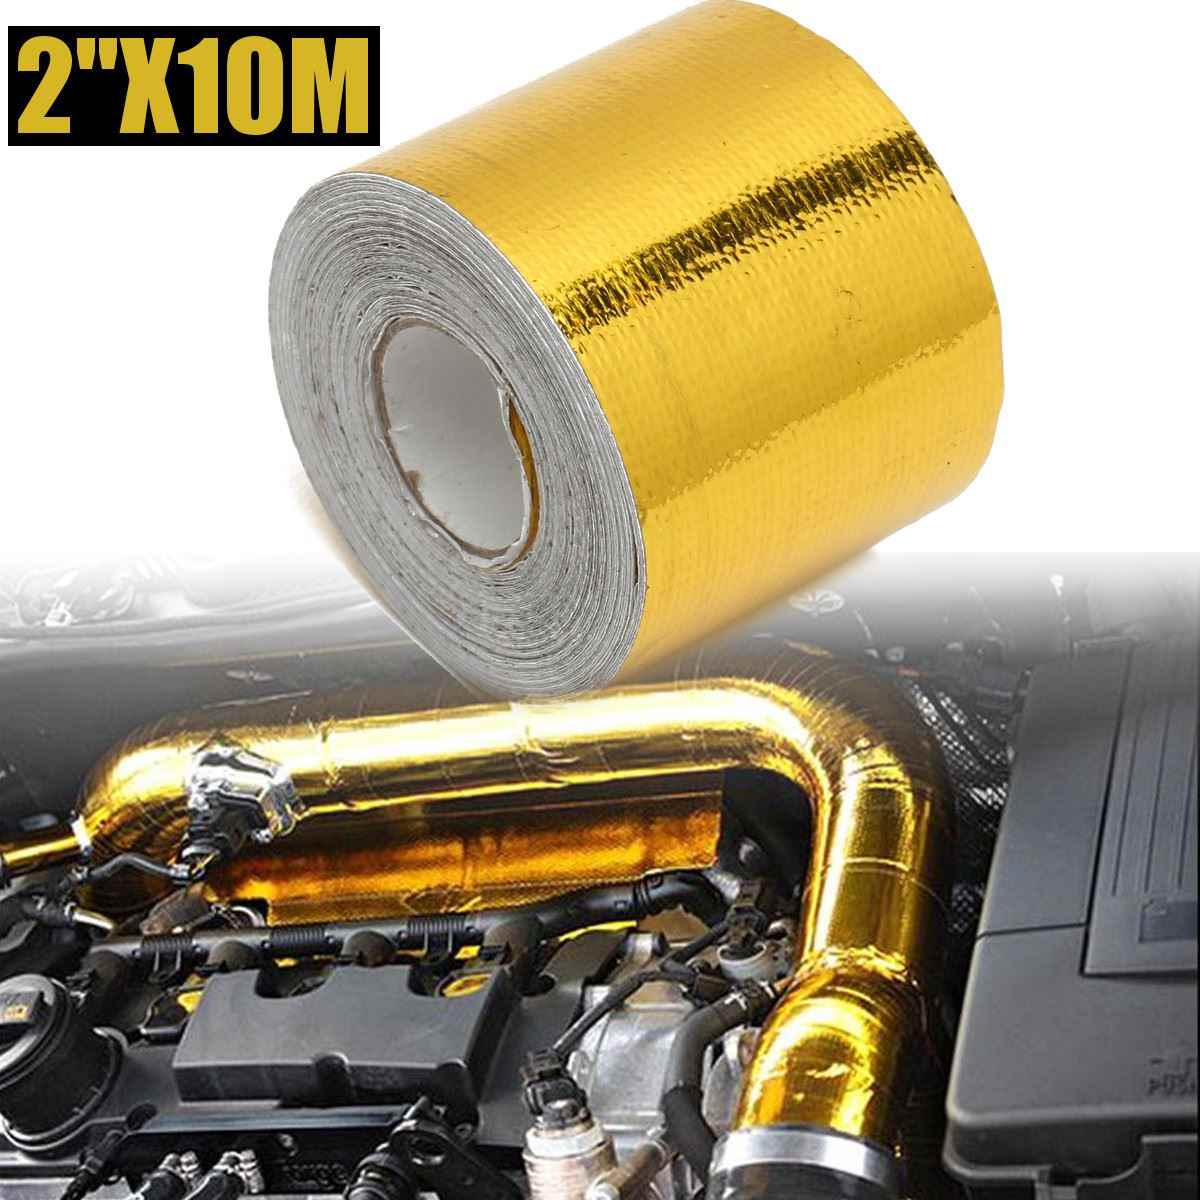 4.5m/5m/10m Car Fiberglass Self Adhesive Gold High Temperature Heat Shield Wrap Tape